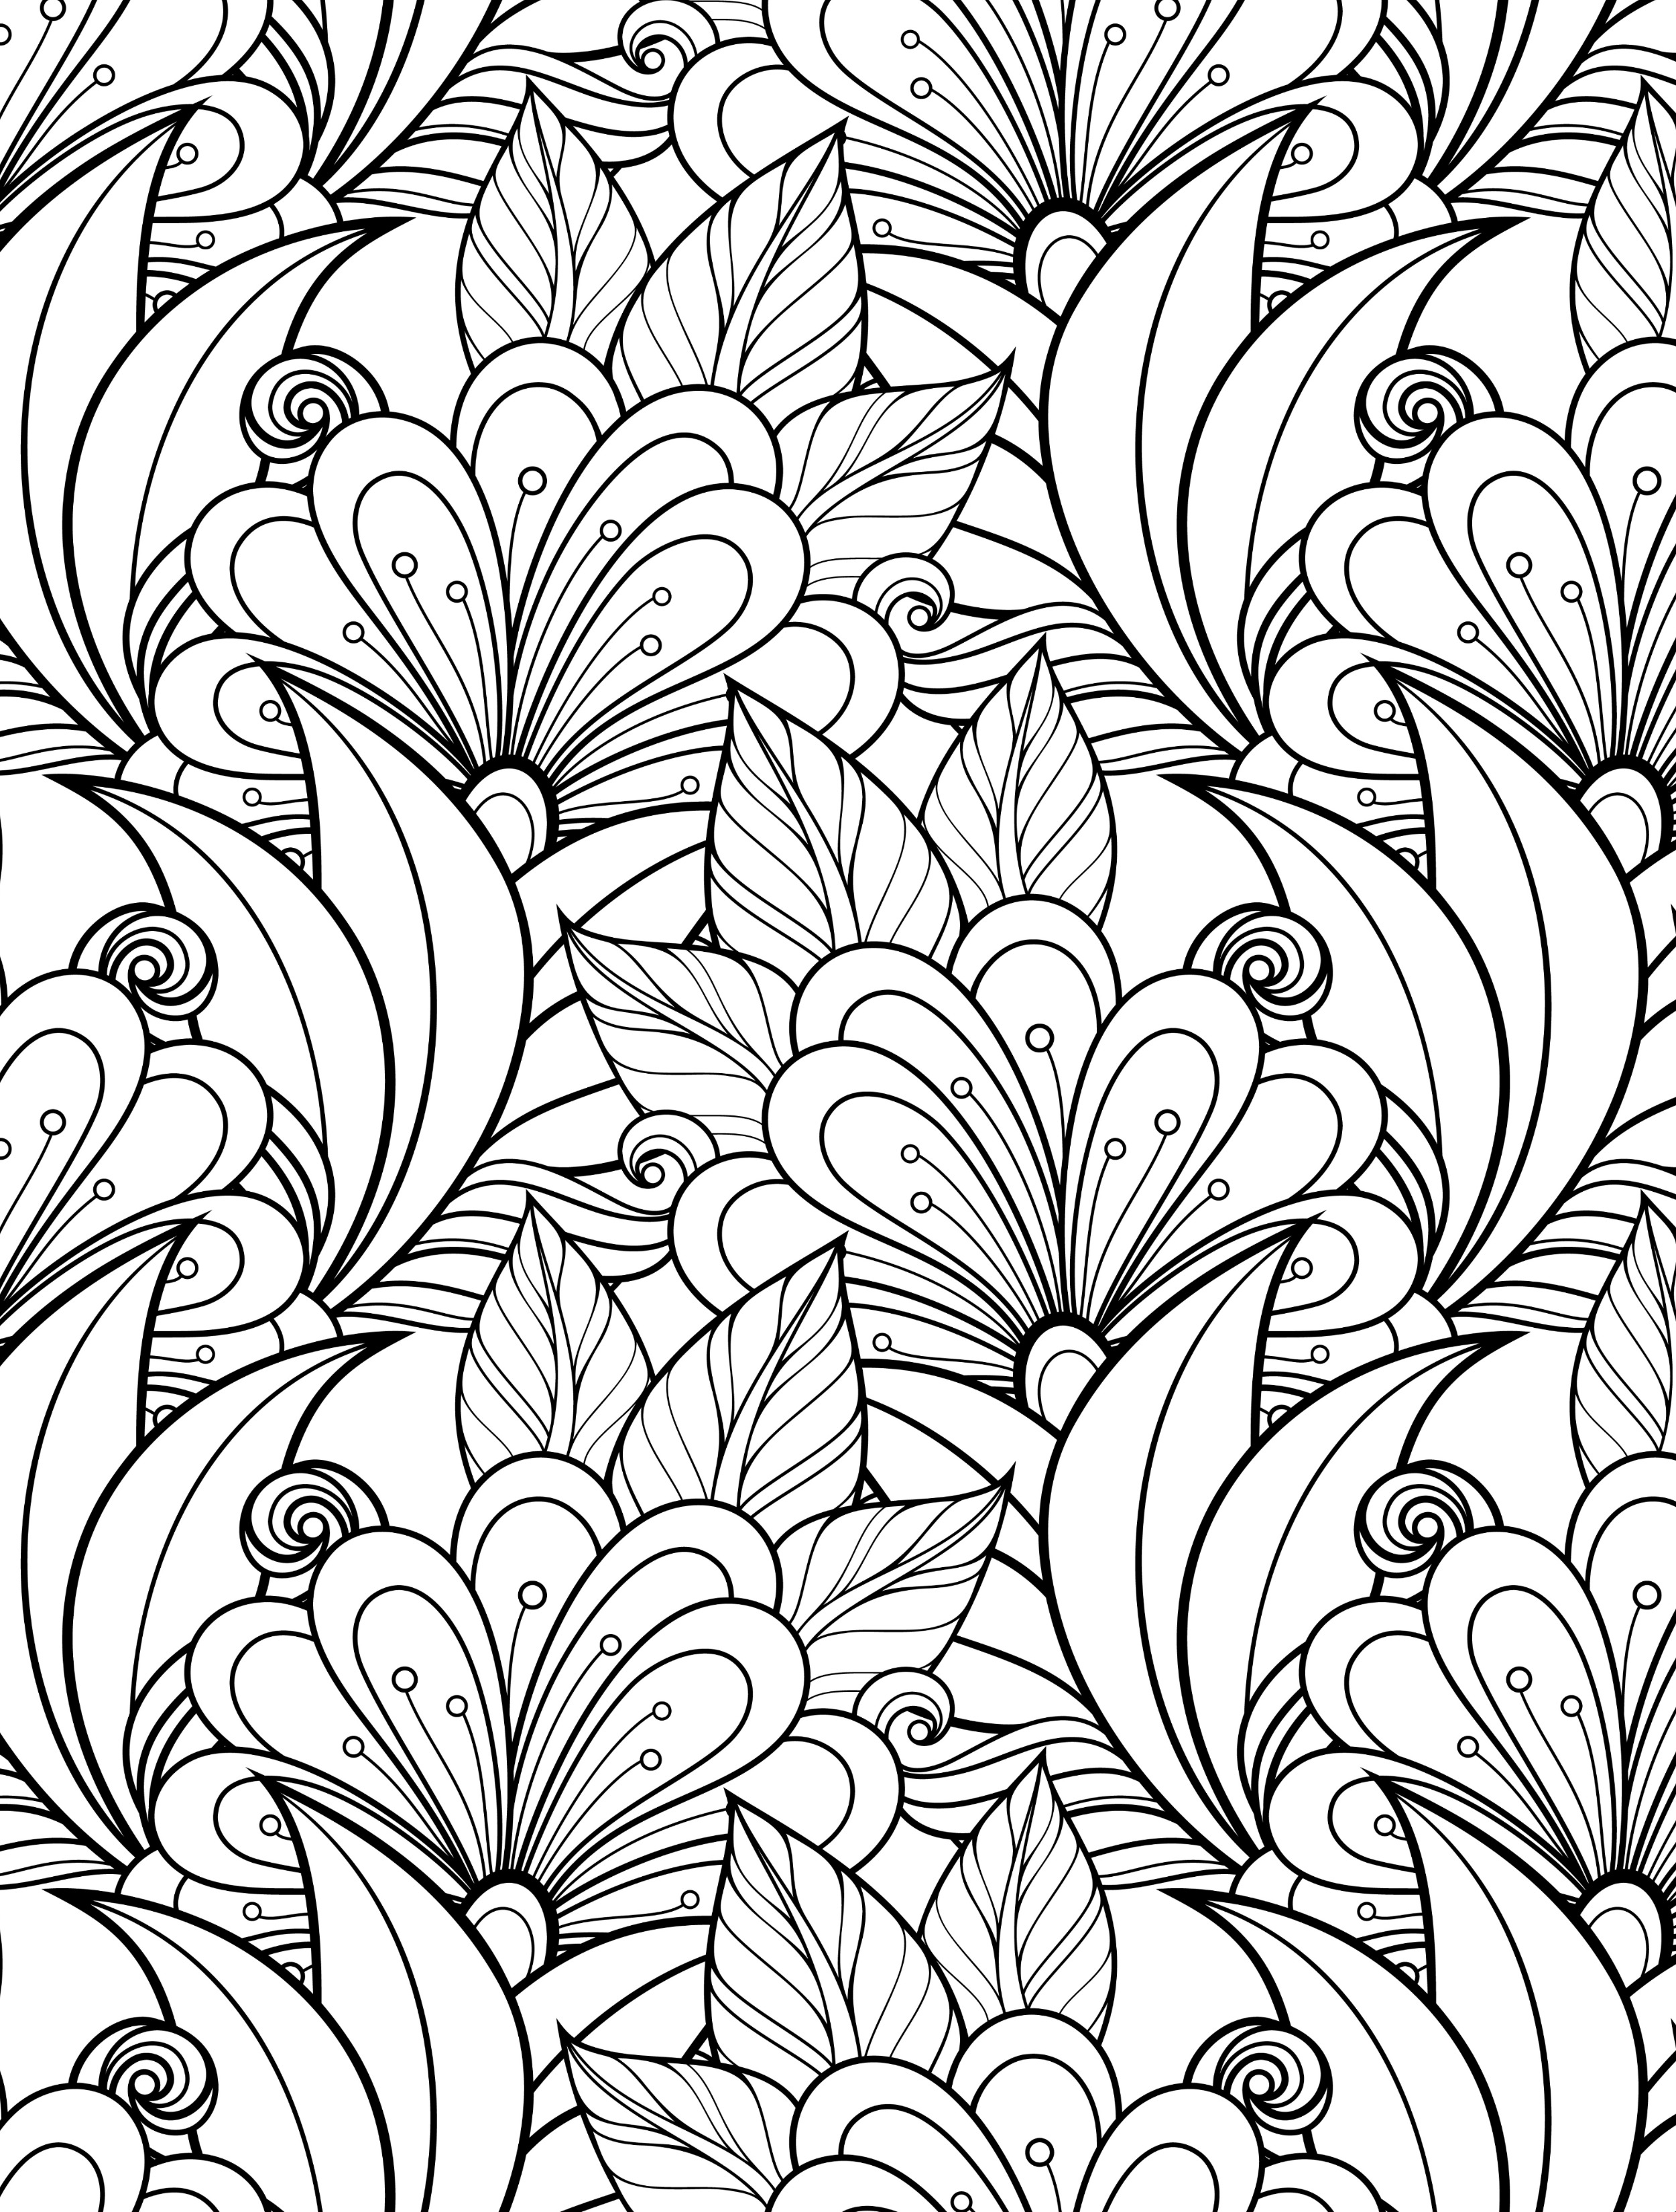 coloring templates for adults complex coloring pages for teens and adults best templates coloring for adults